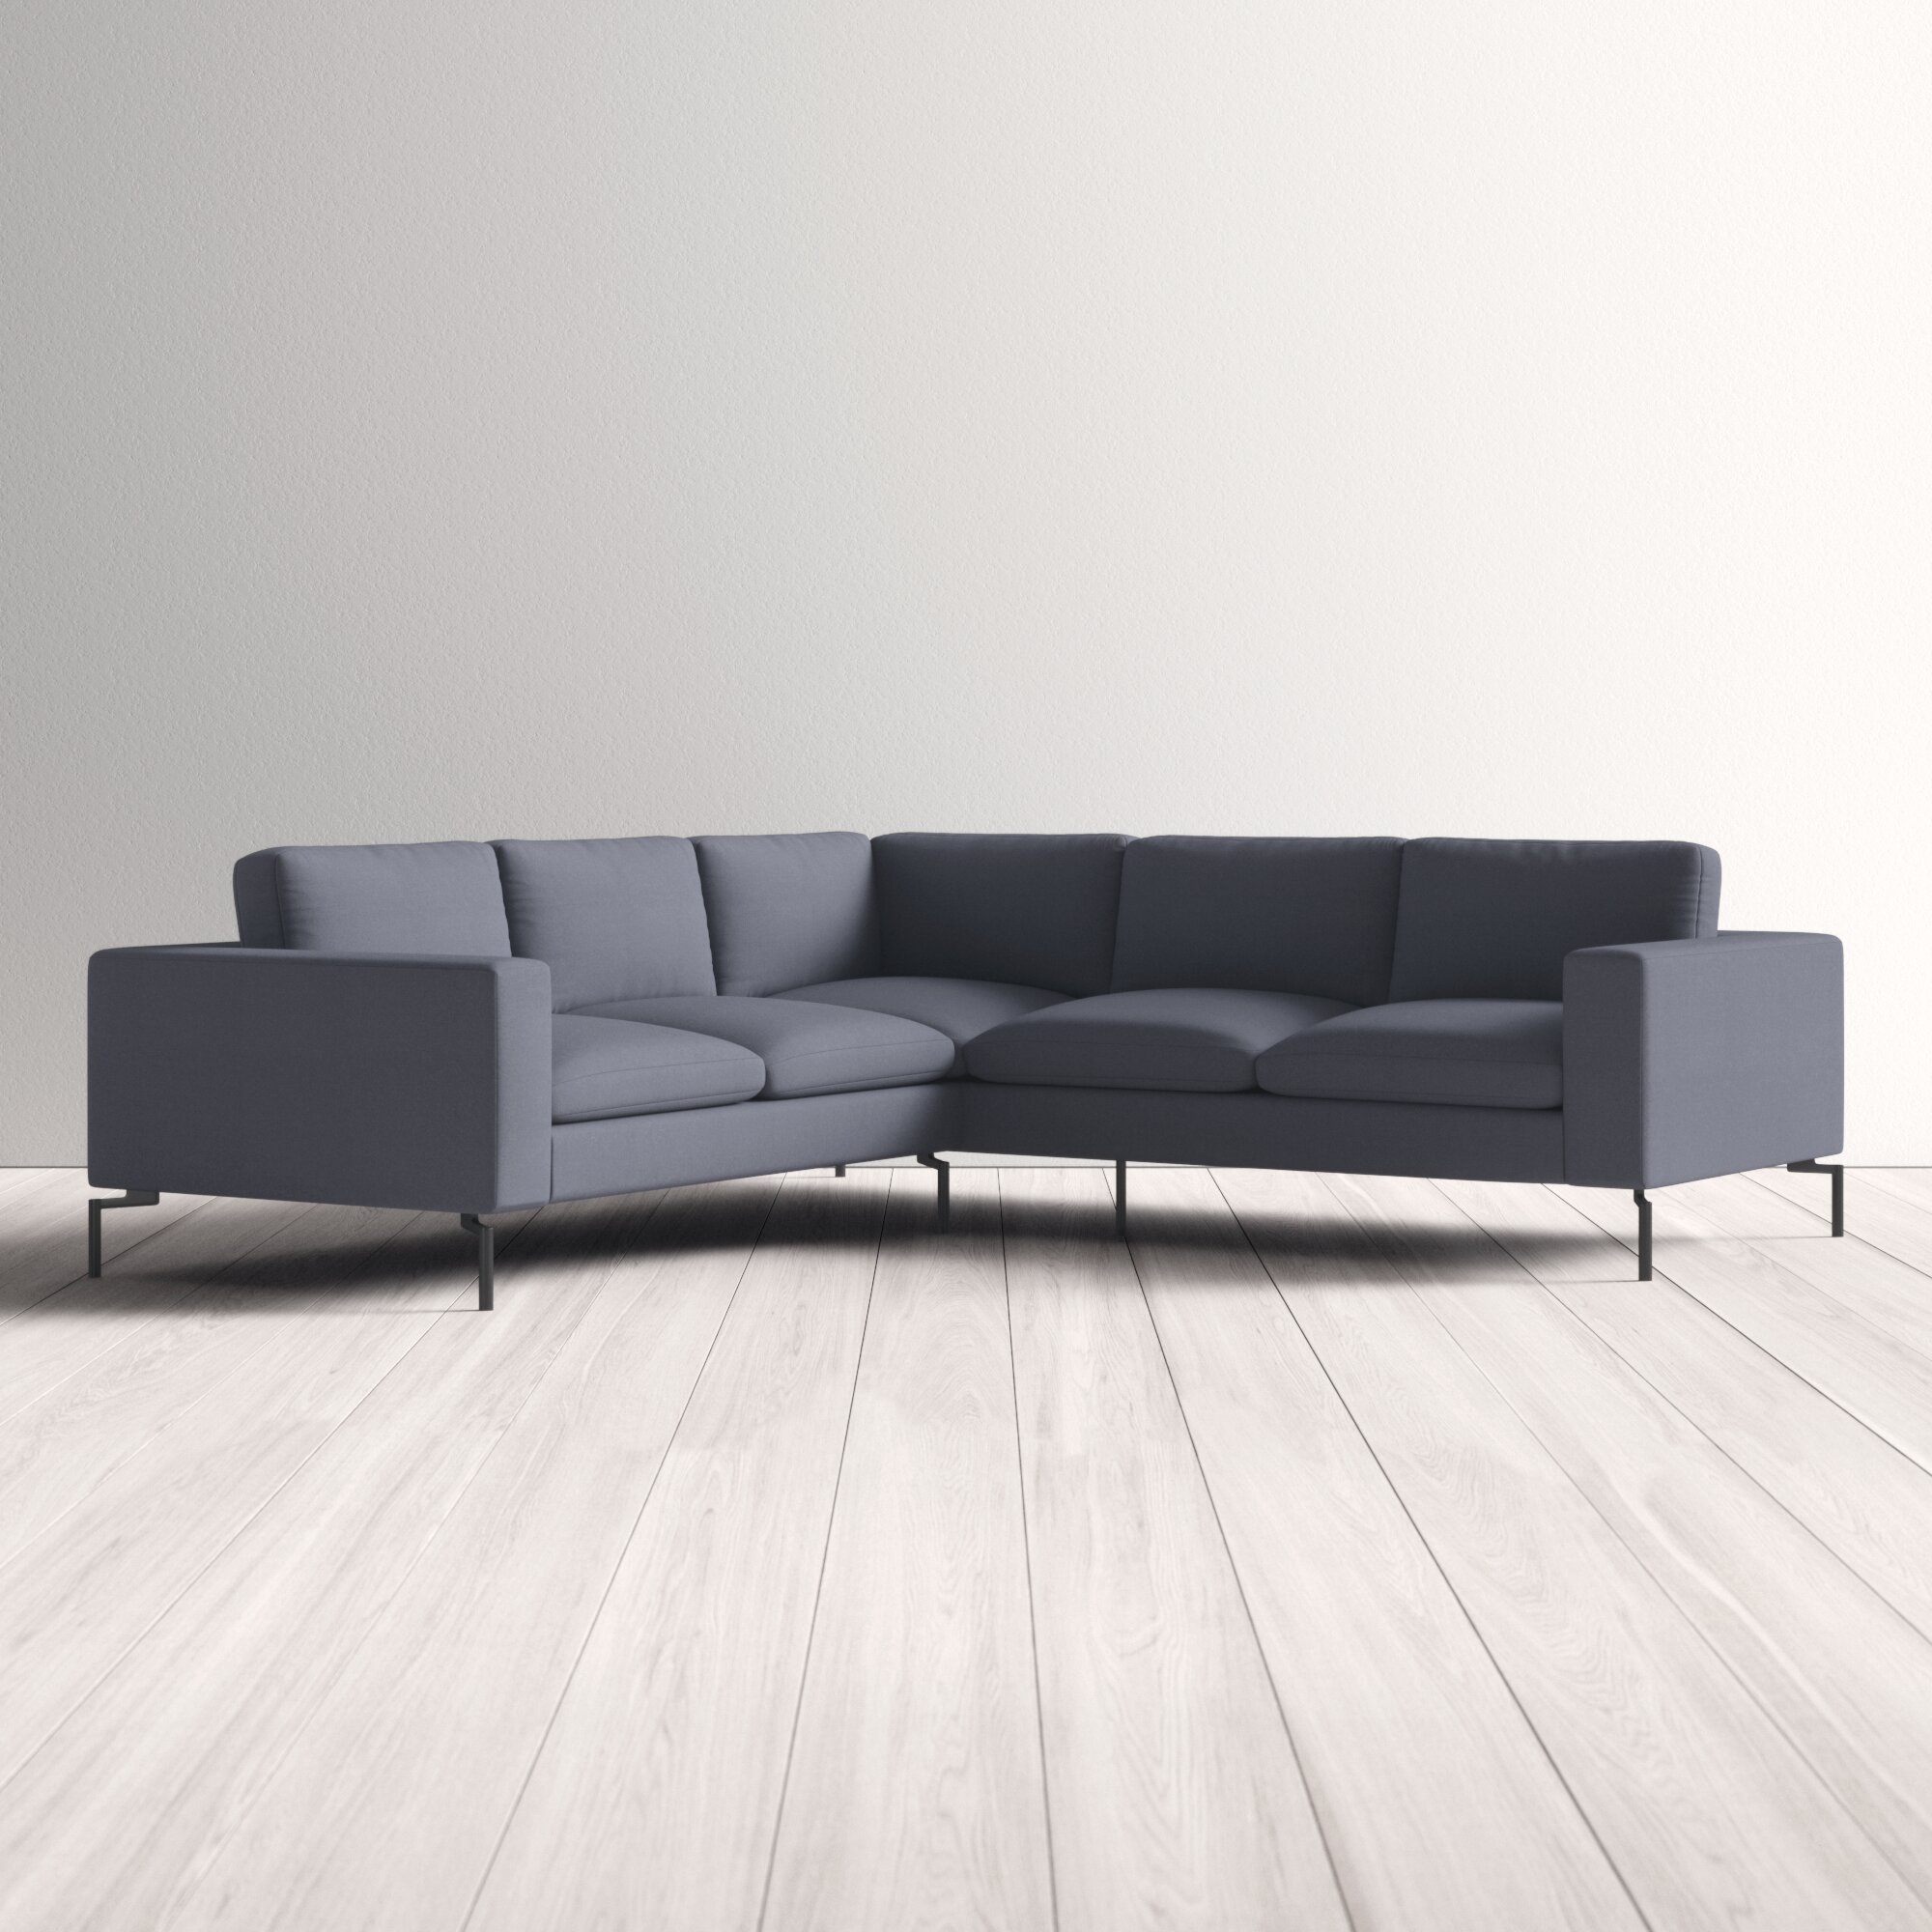 The New Standard 102 Sectional Sofa